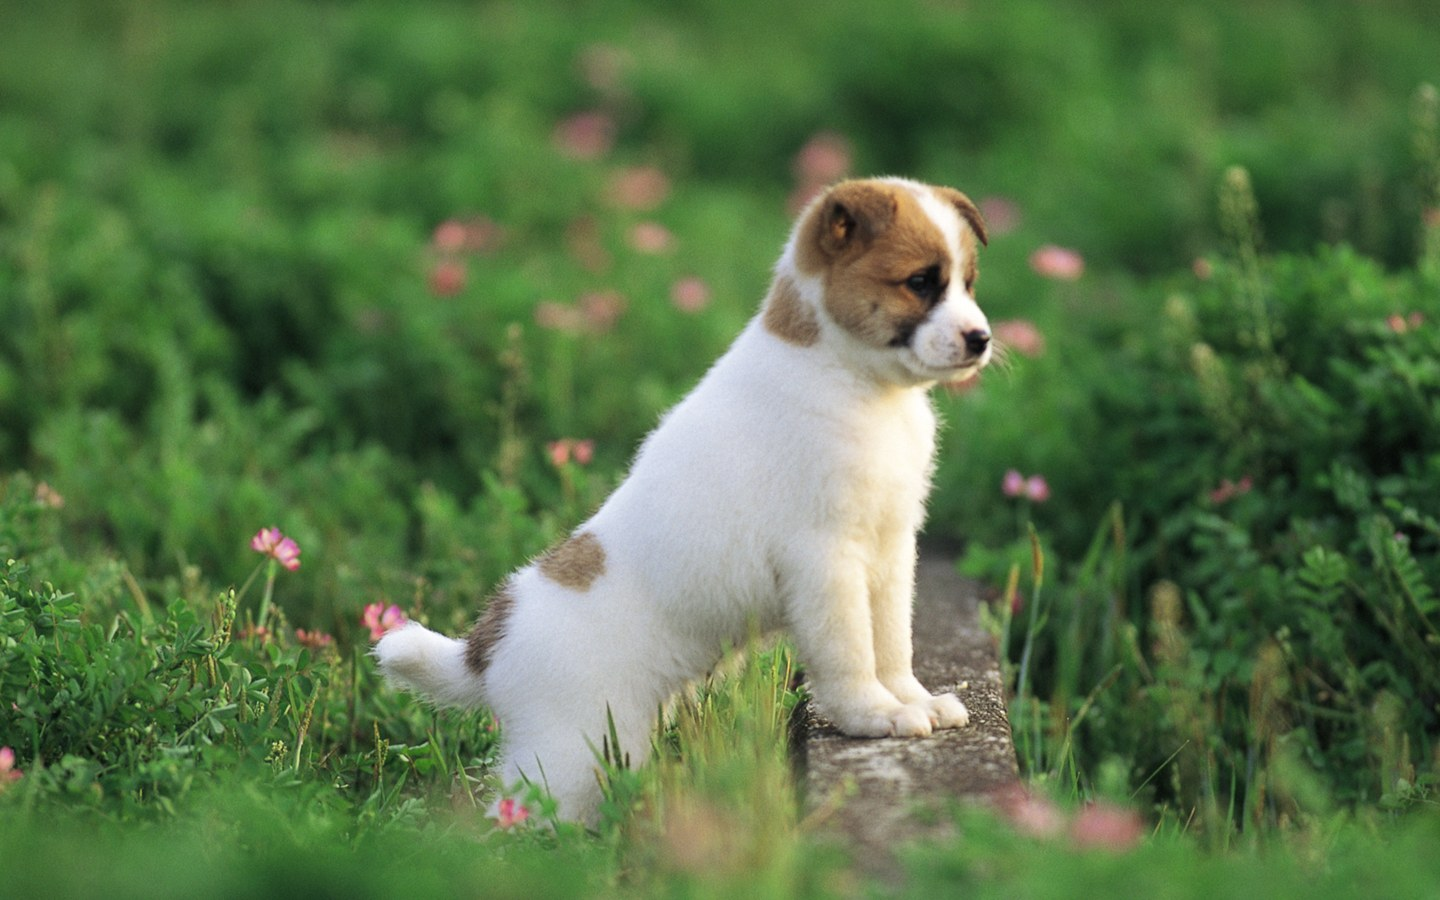 Cute puppy in a park puppy dog on grass Lovely puppies outdoor